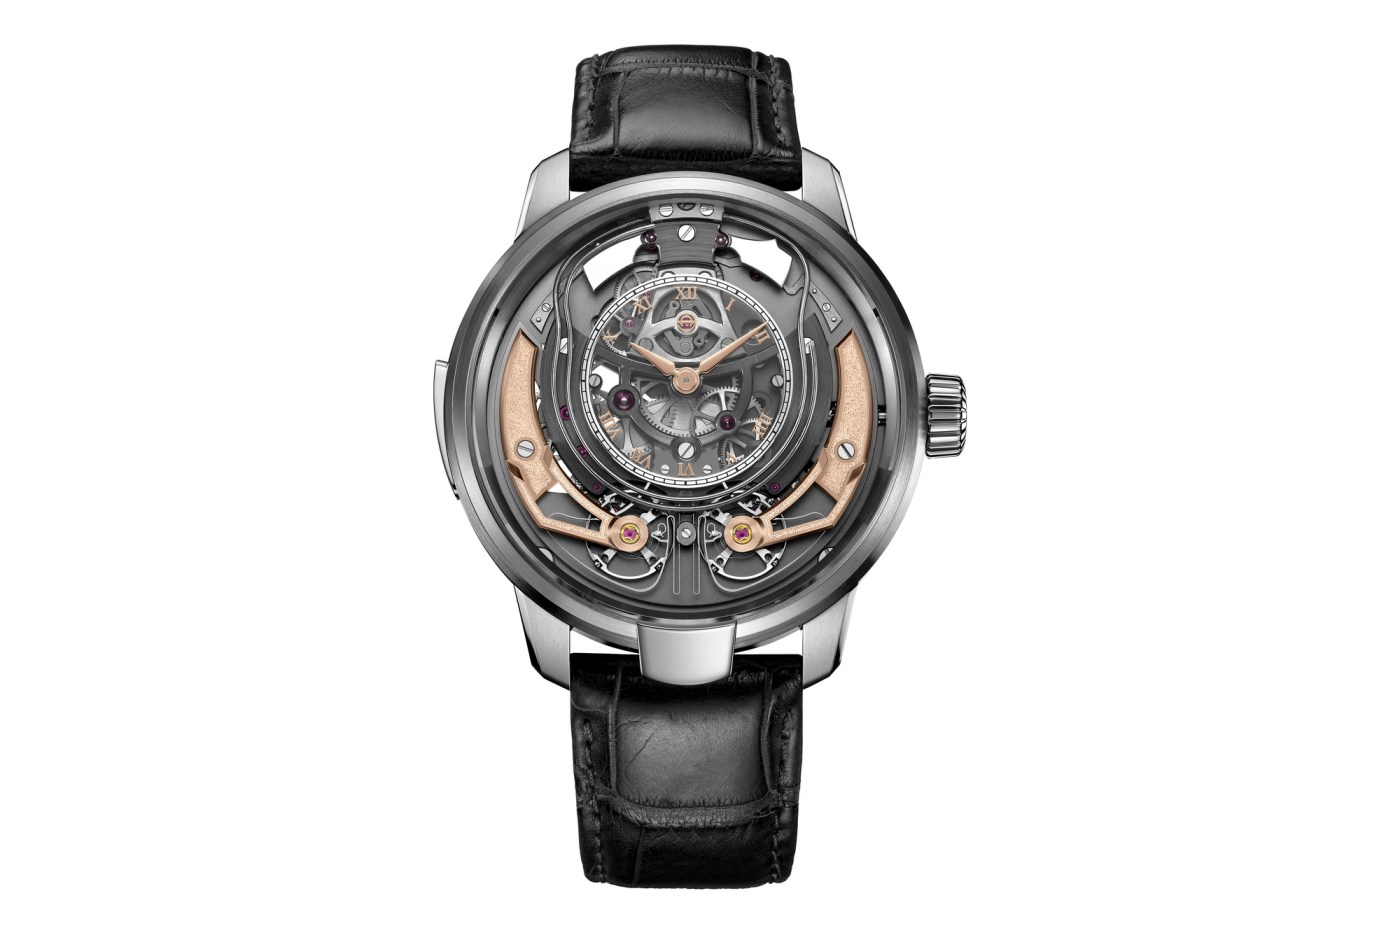 Minute Repeater Resonance front